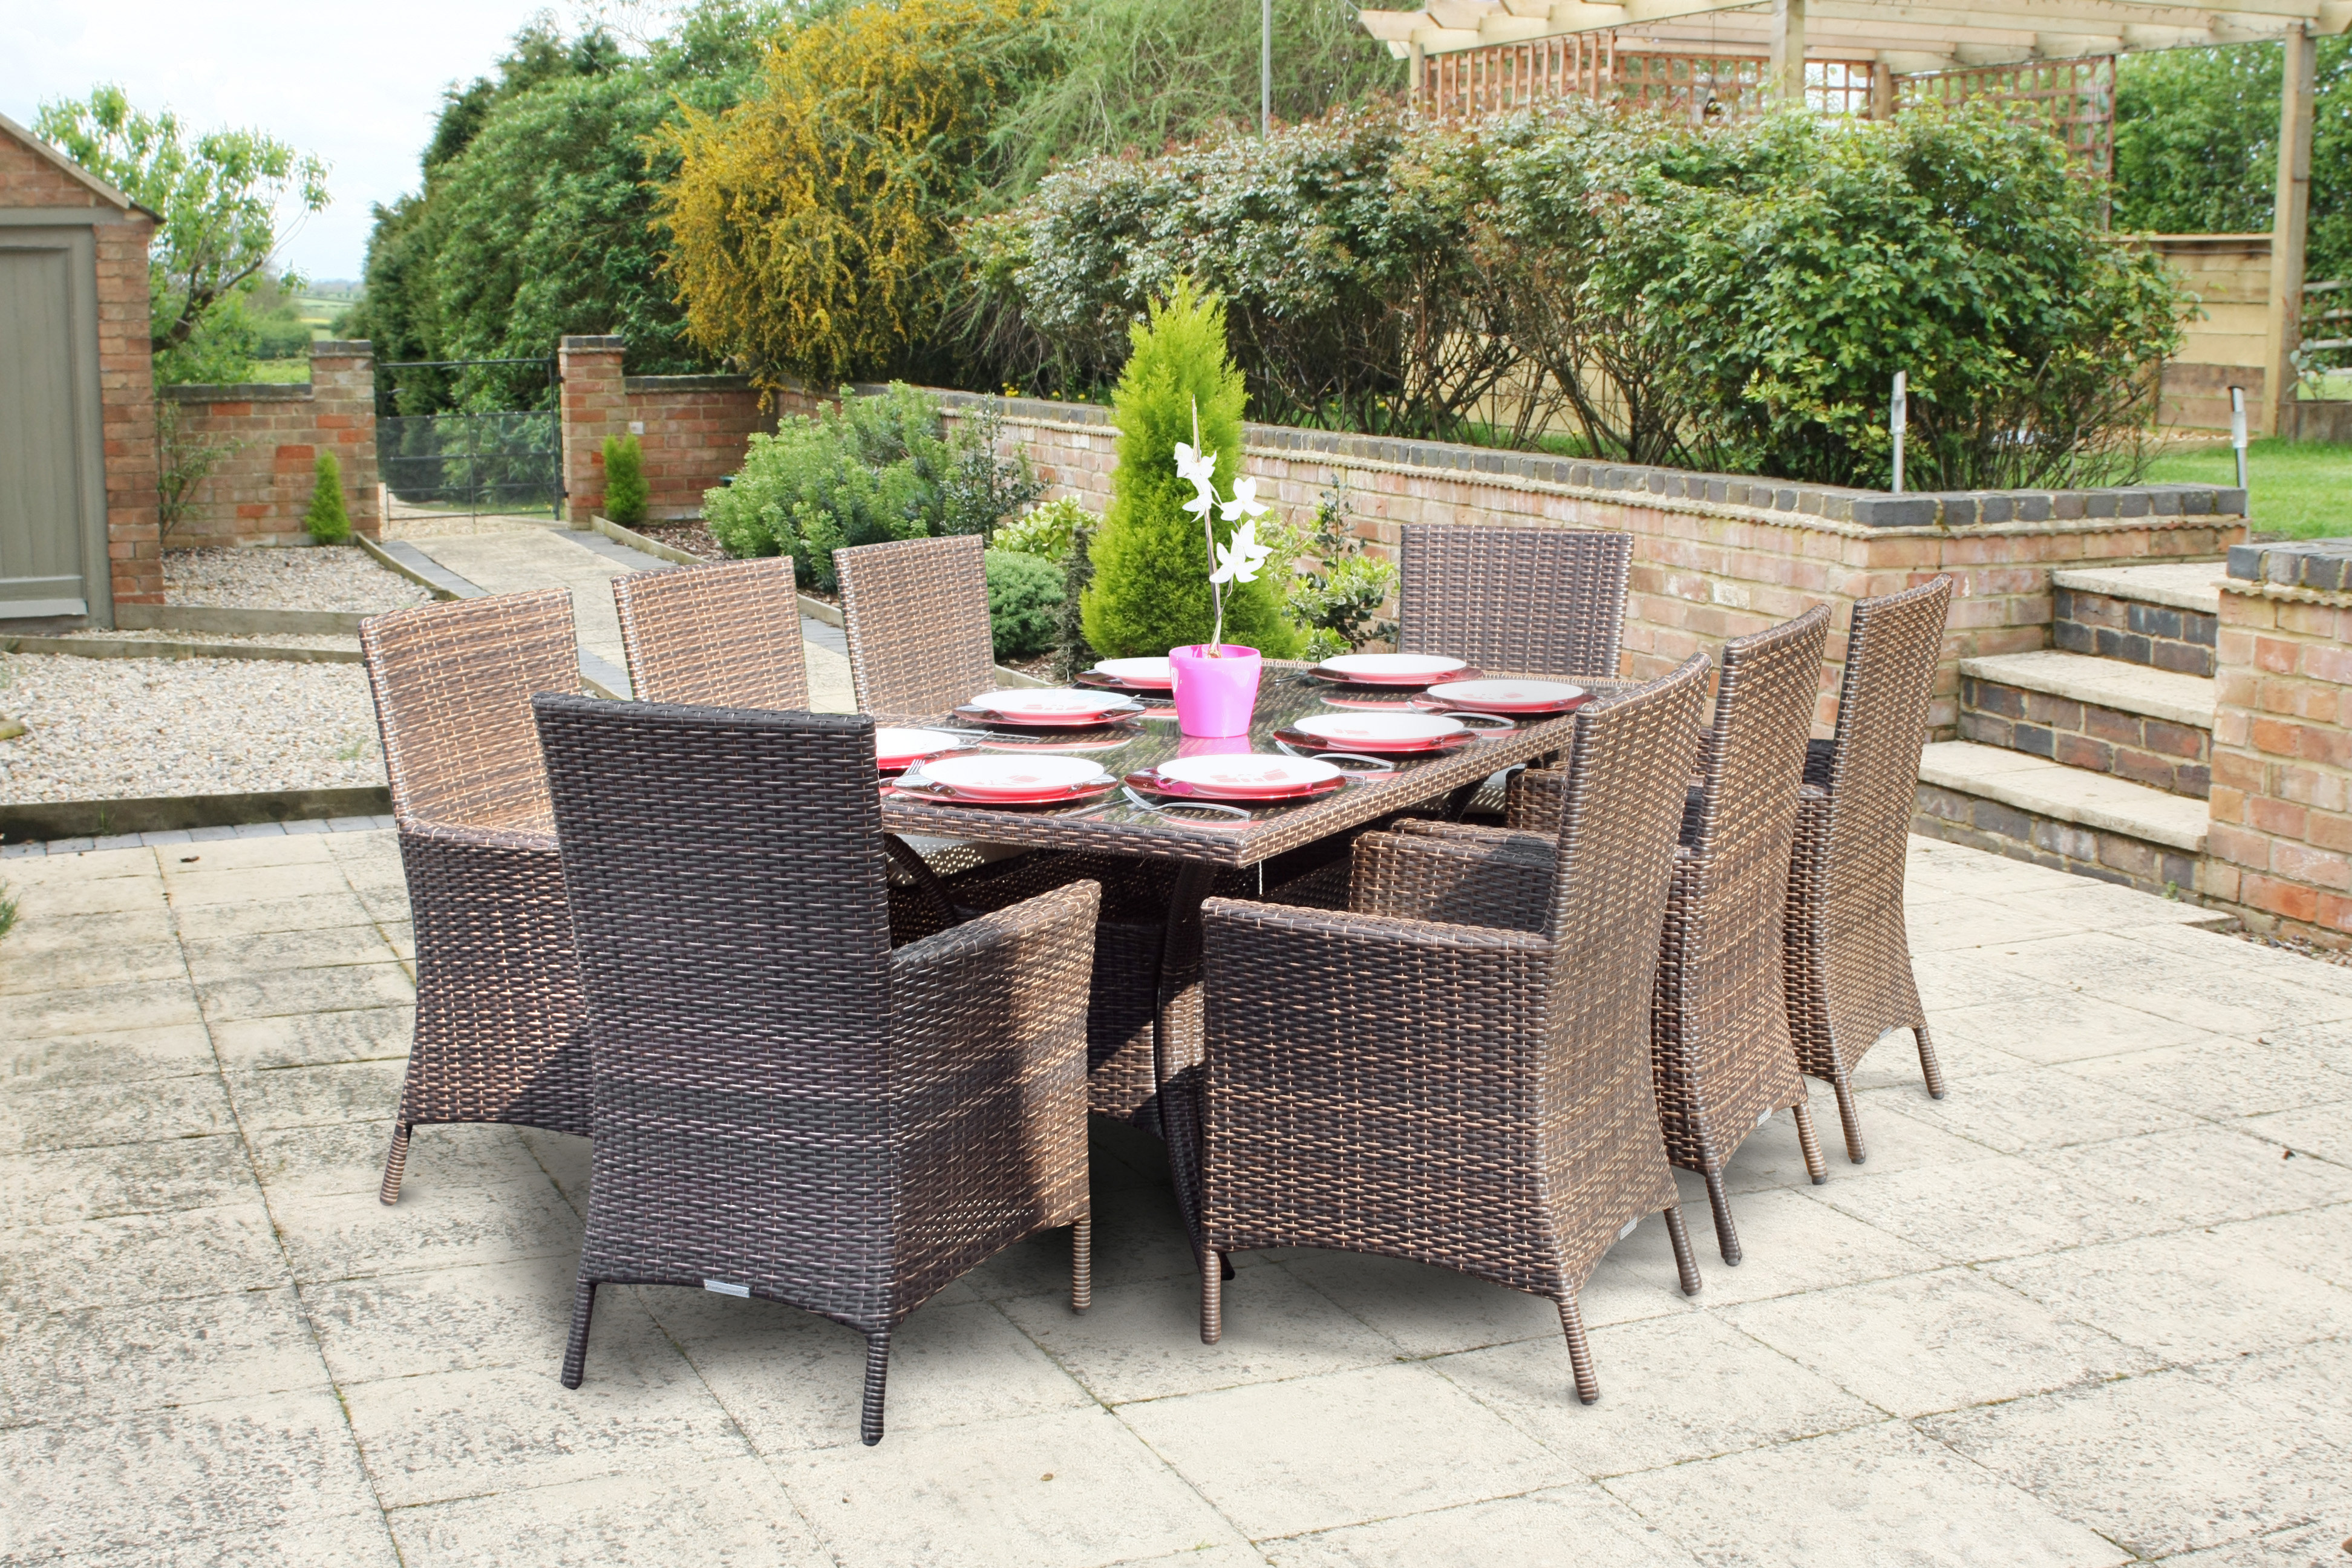 Superior Rattan Table And Chair Set Part - 3: Wovenhill Are Proud To Supply Itn News With Rattan Garden